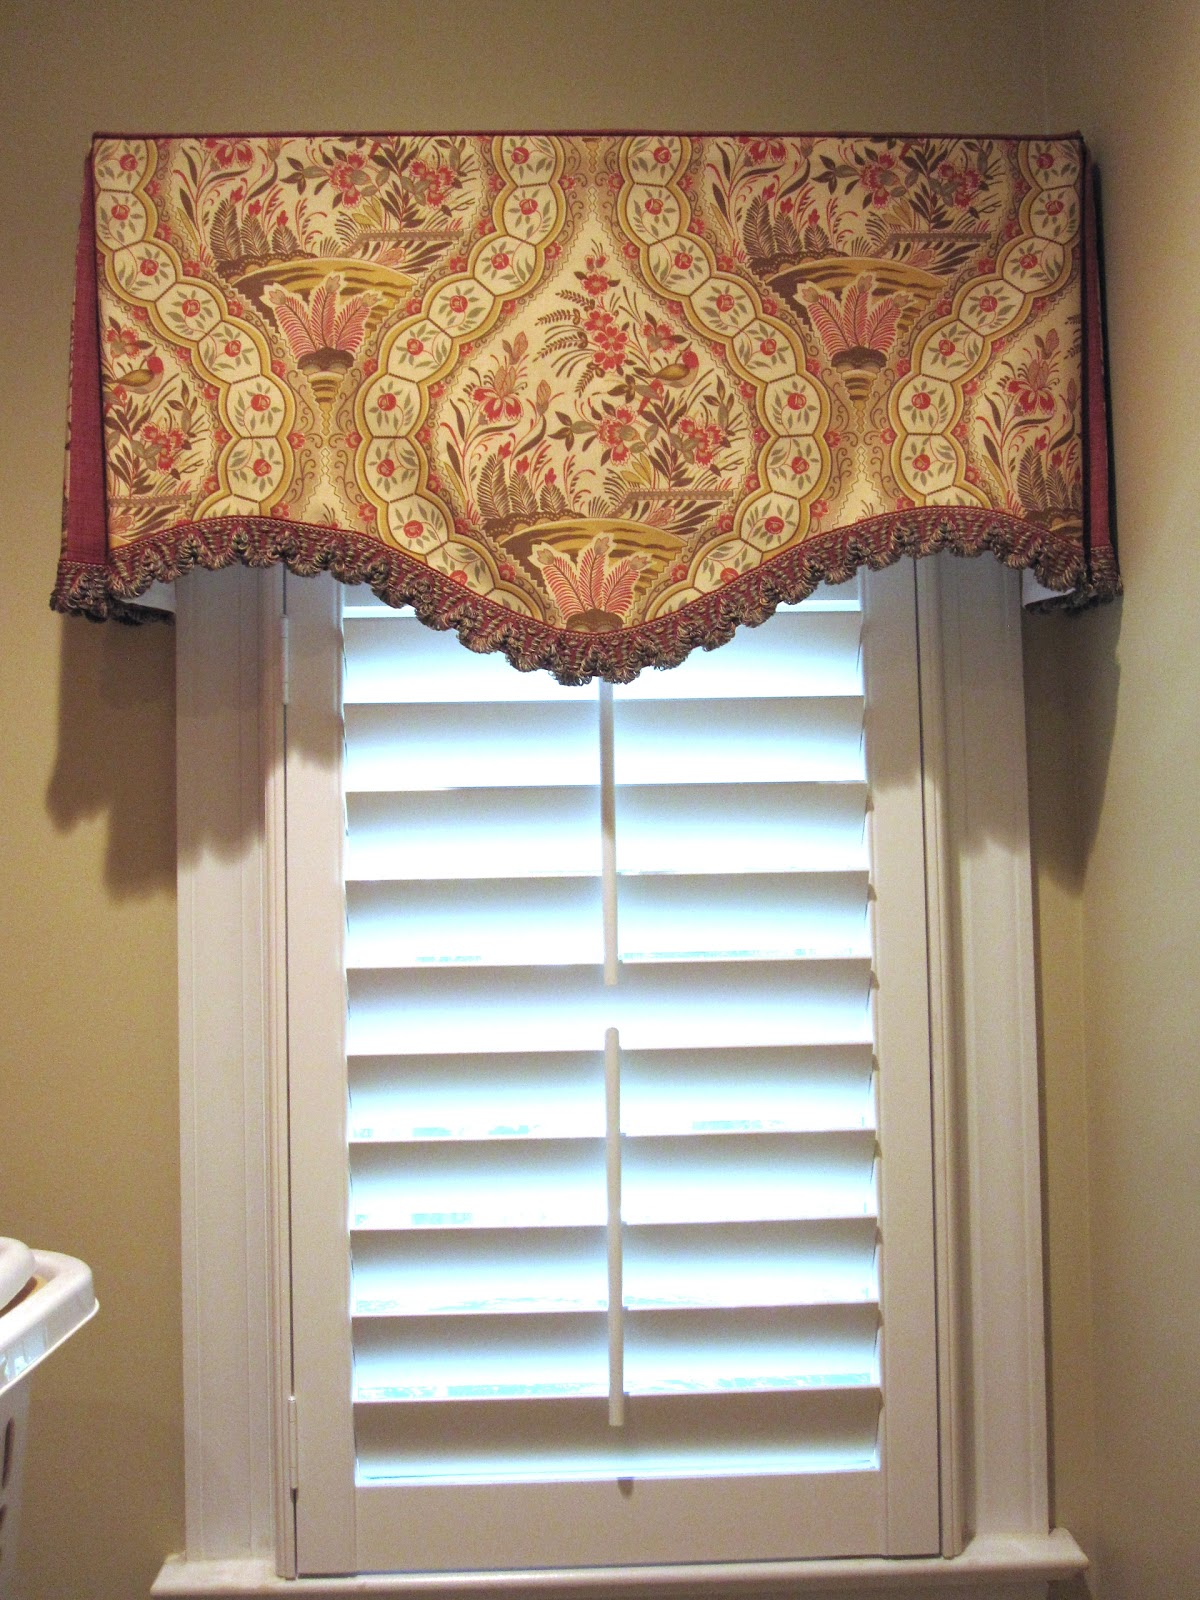 Bathroom valance ideas - Drapery And Valance Design Drapery Valance Ideas Generalusa